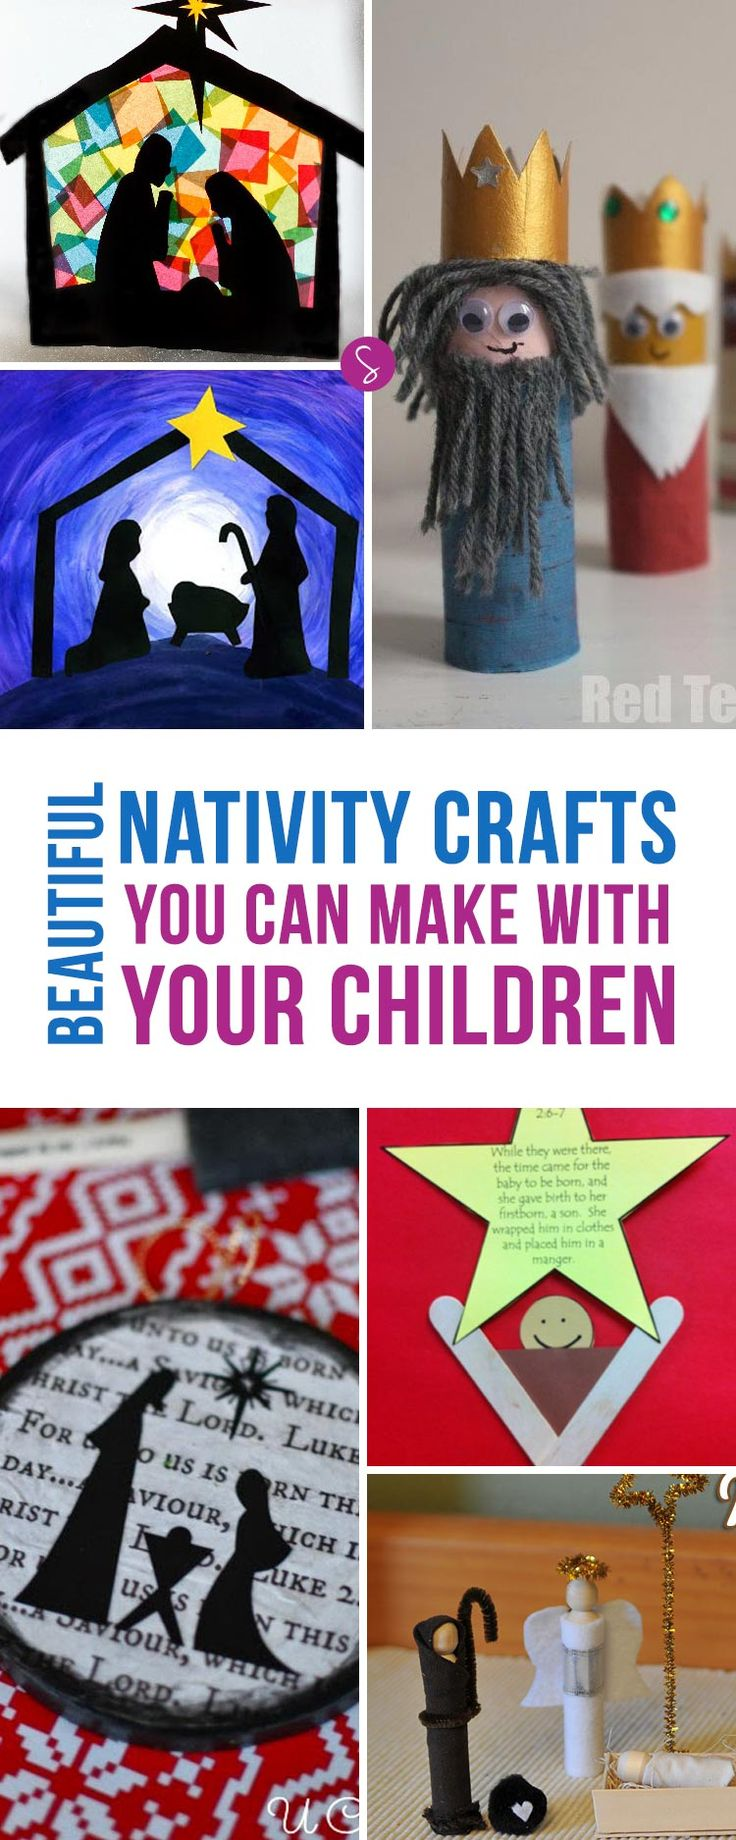 Craft sets for kids - Love These Nativity Craft Ideas Especially The Toilet Paper Kings